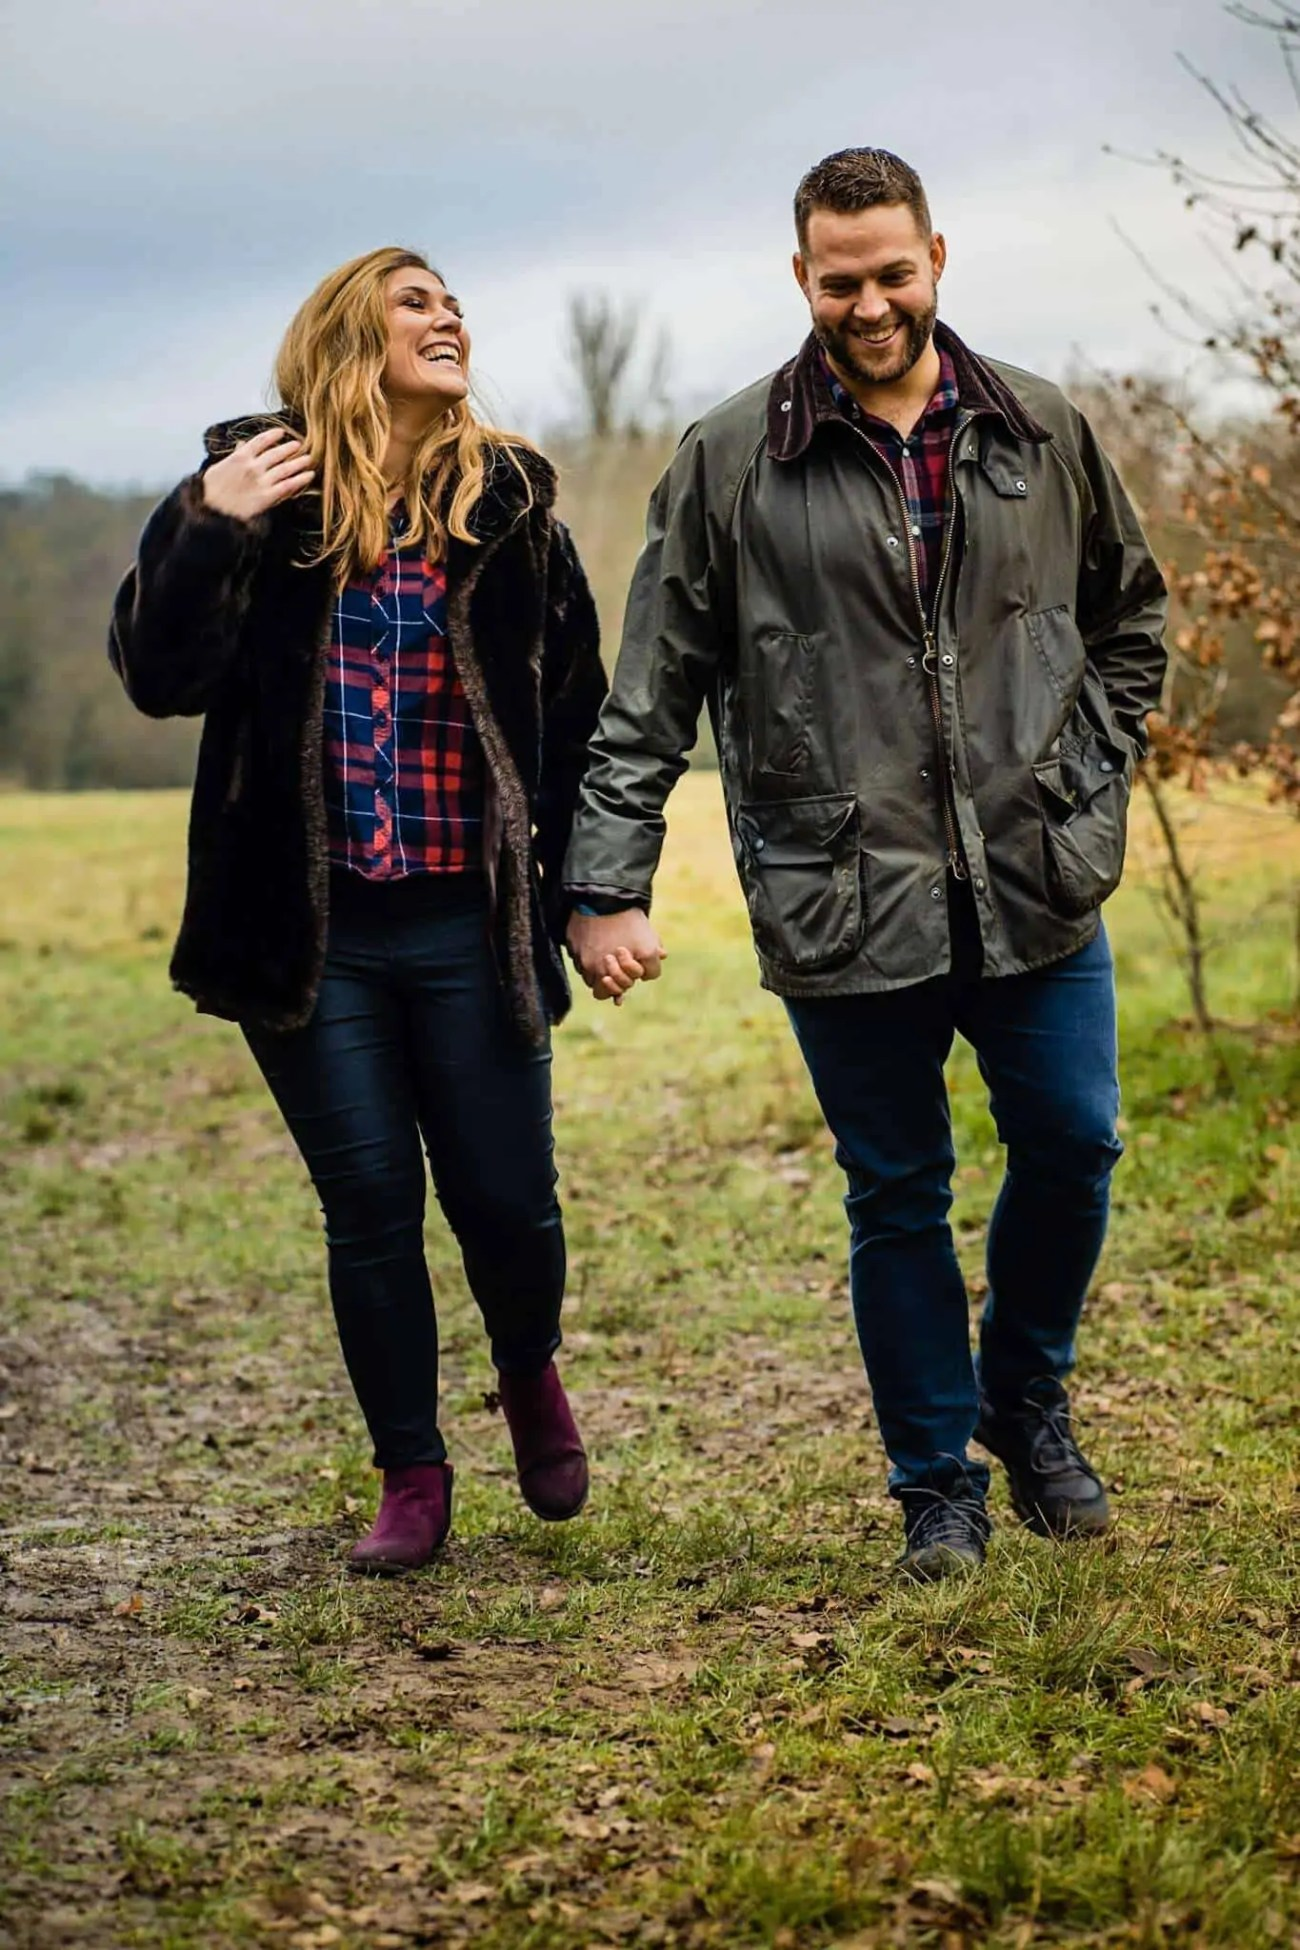 An engaged couple walking through a park in north London holding hands